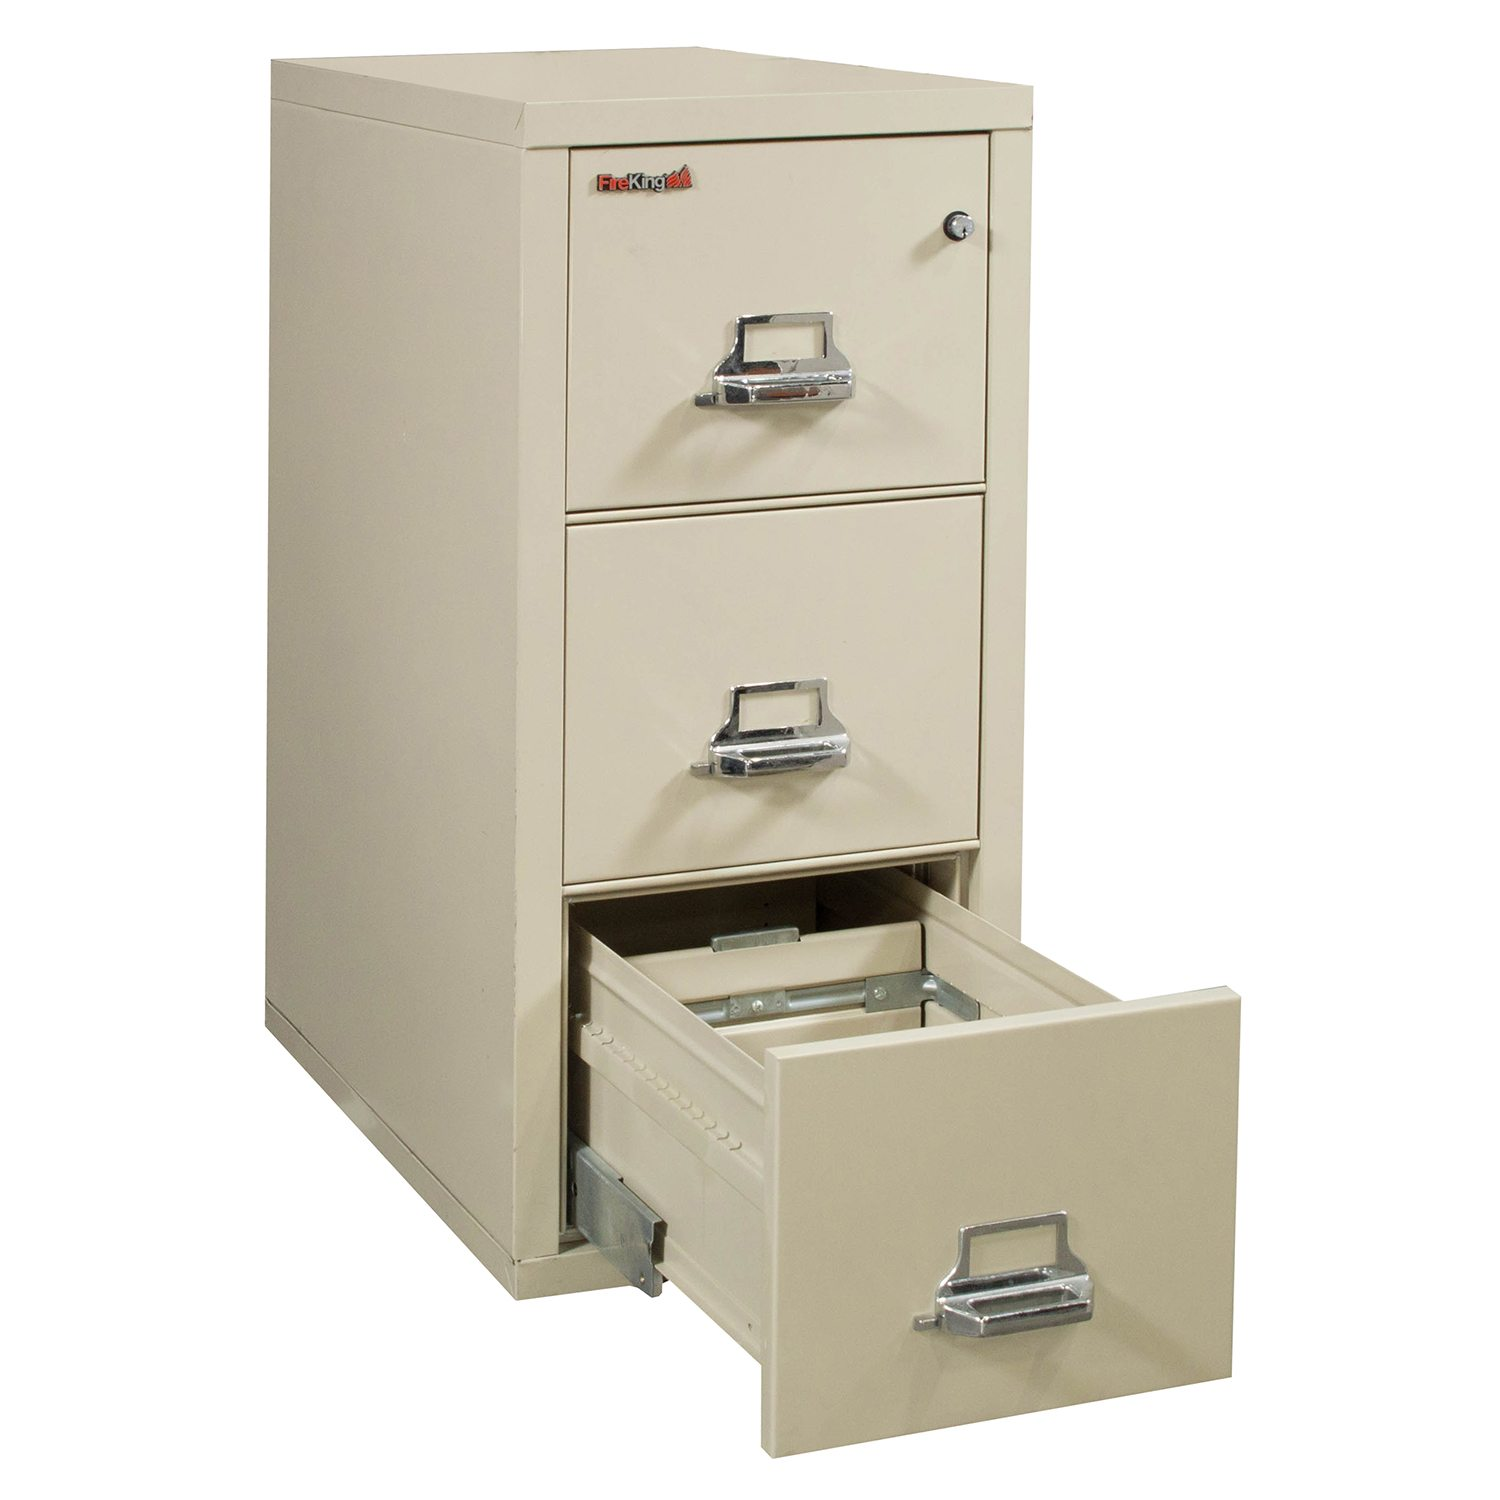 vertical file cabinets fireking used 3 drawer letter size vertical file cabinet 27935